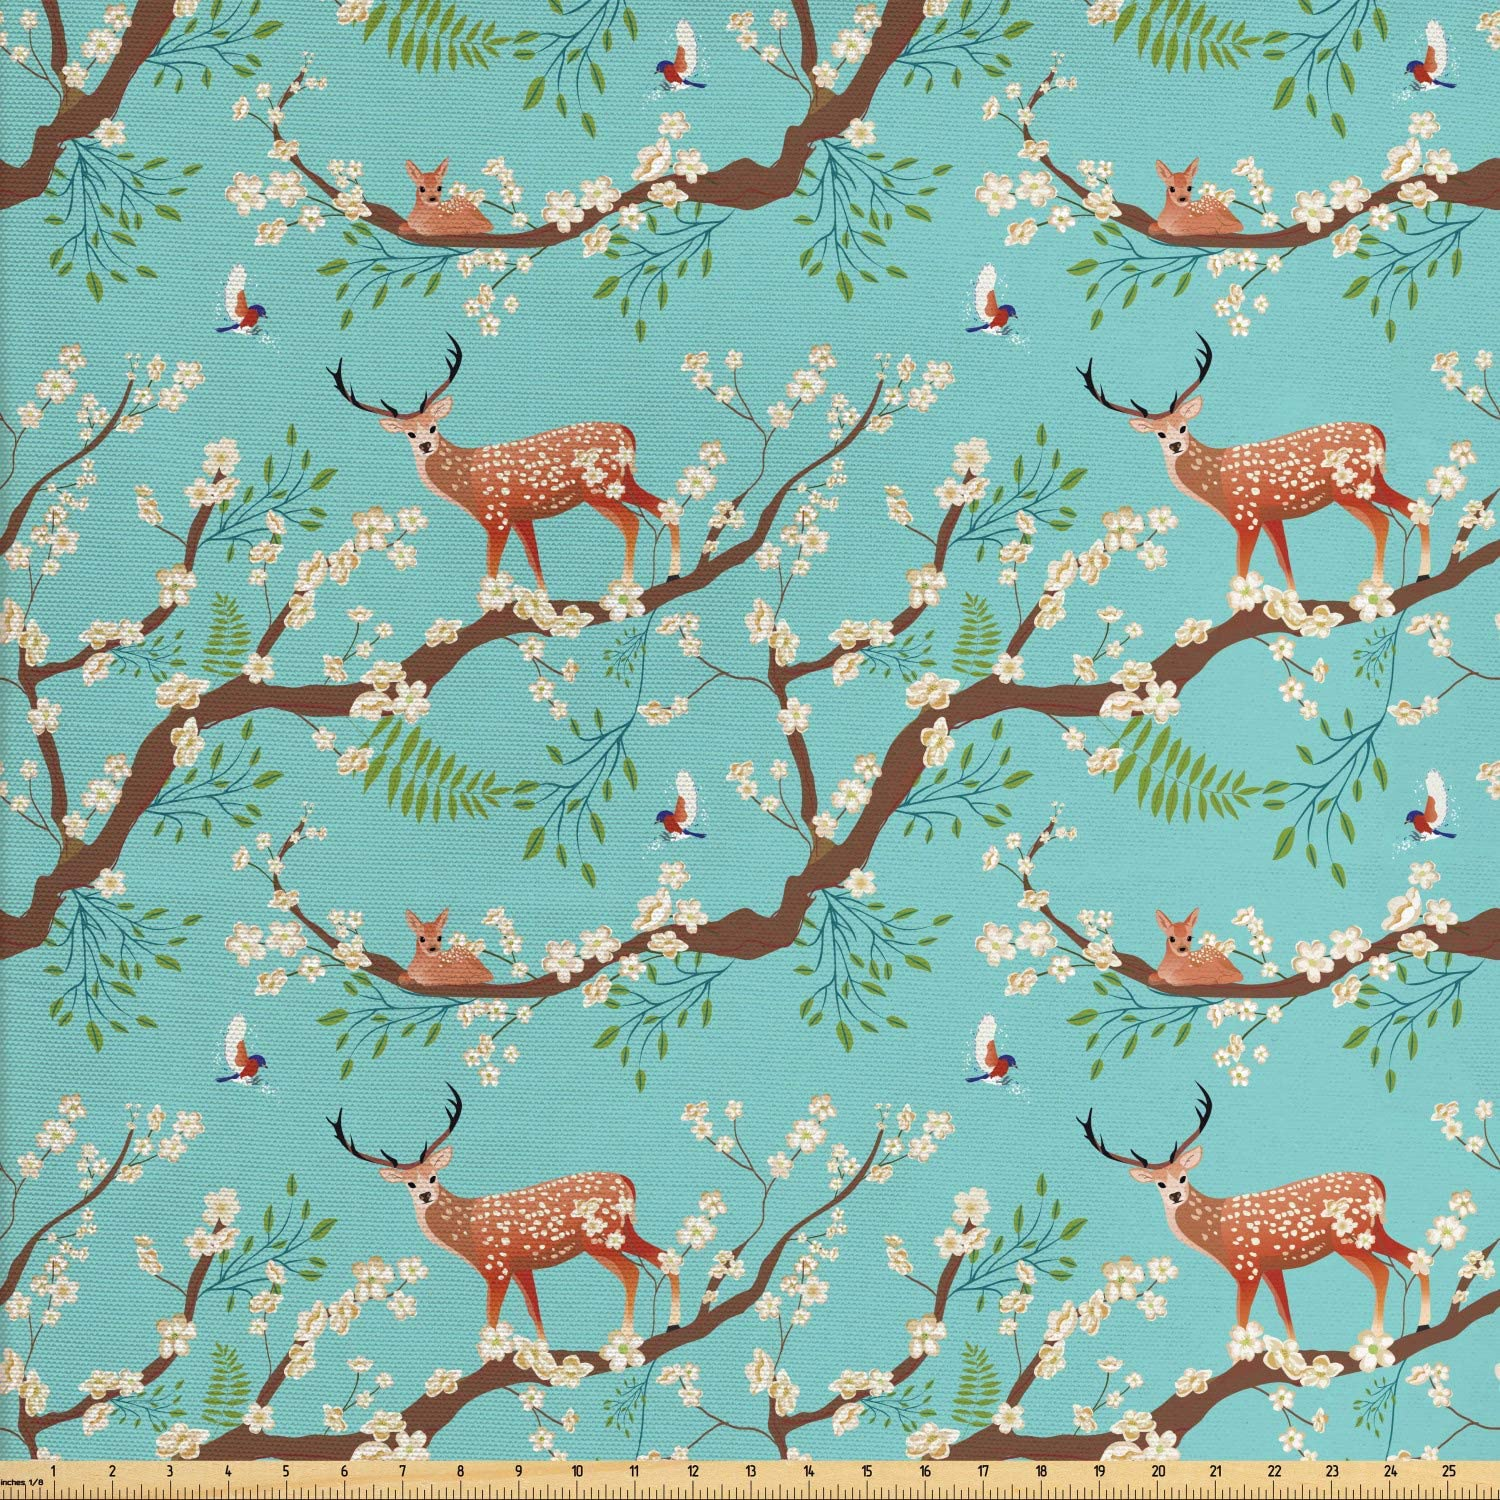 Ambesonne Forest Fabric by The Yard, Animal Bird Sika Deer Japanese Style Pattern Sakura Blossoms Garden Artwork, Decorative Fabric for Upholstery and Home Accents, 1 Yard, Seafoam and Umber